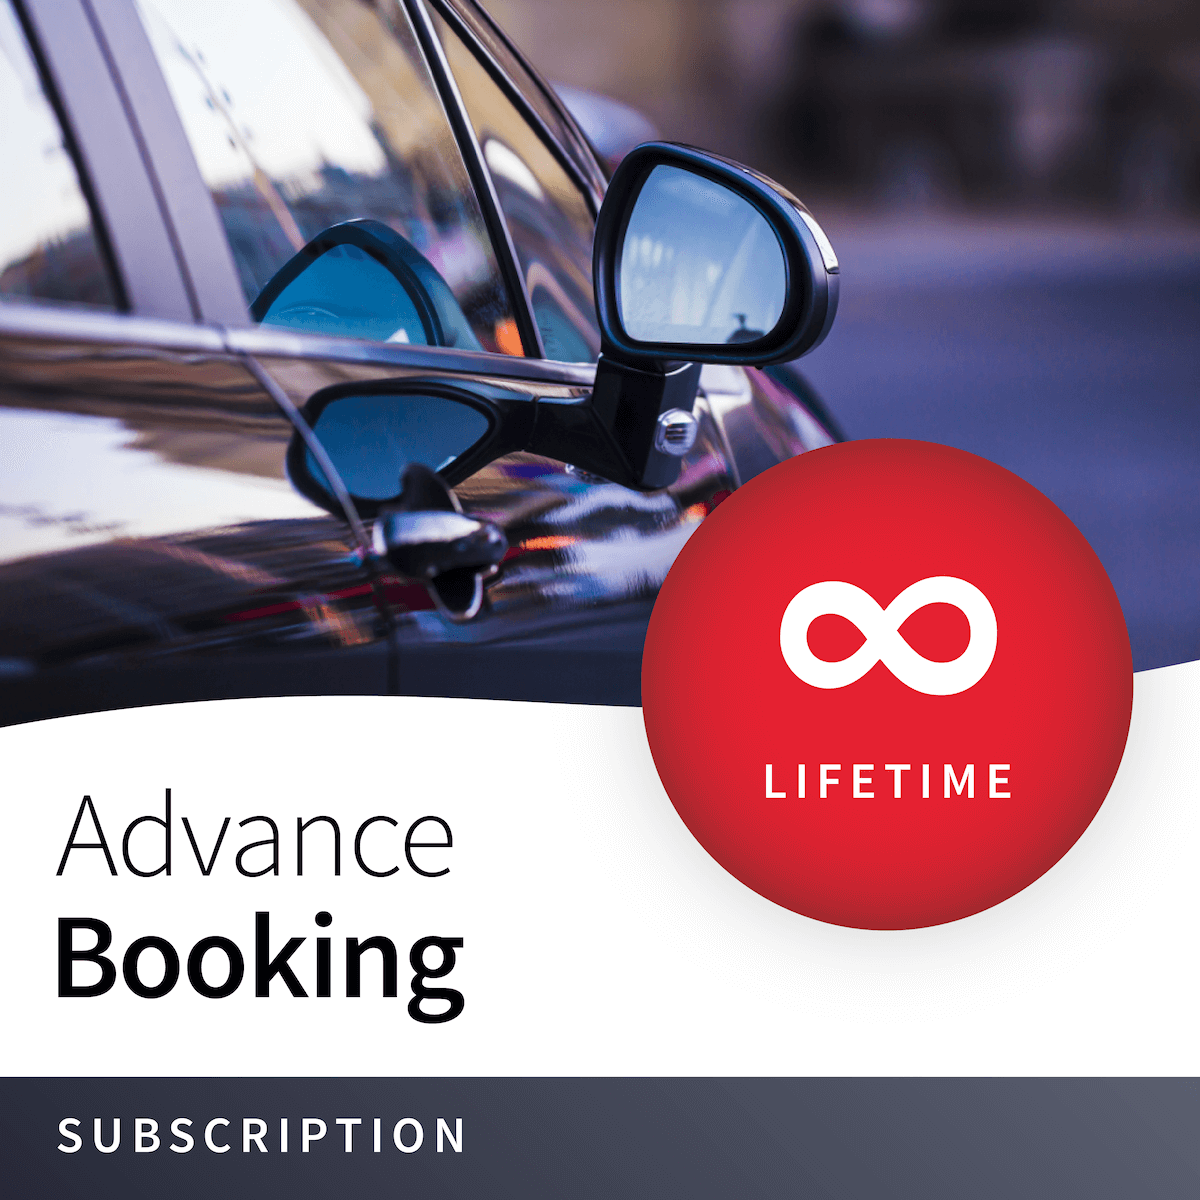 Priority Advance Booking – Lifetime 1